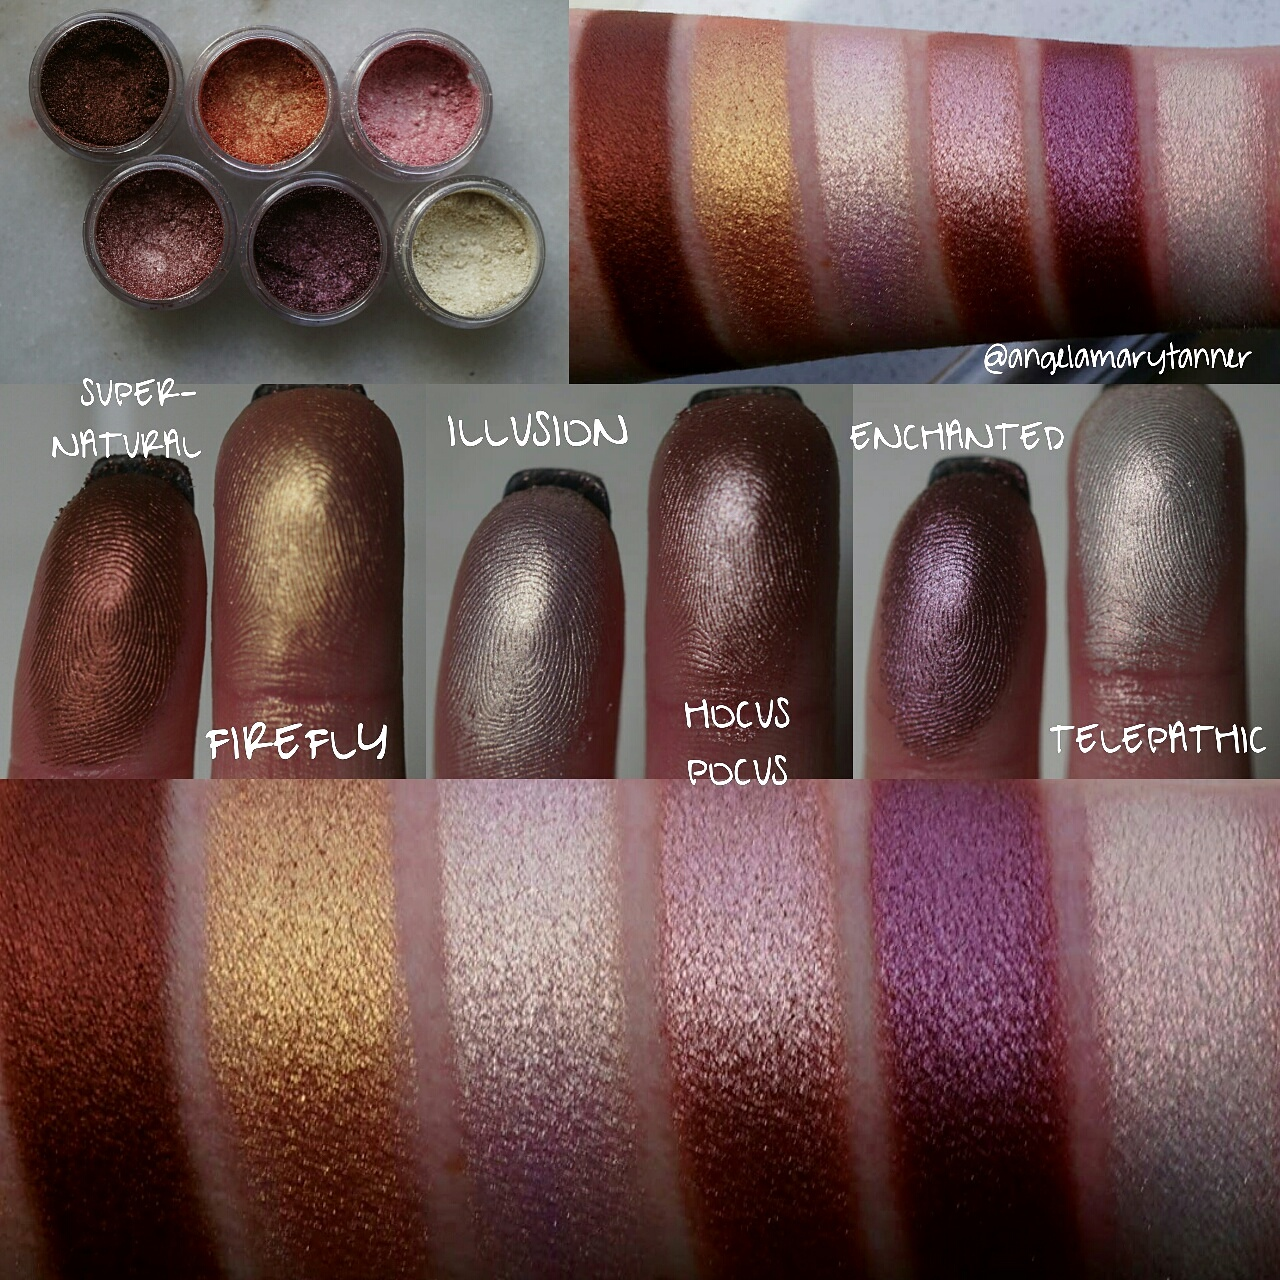 Extrêmement NEW MAKEUP GEEK FOILED PIGMENTS: REVIEW and SWATCHES KL92